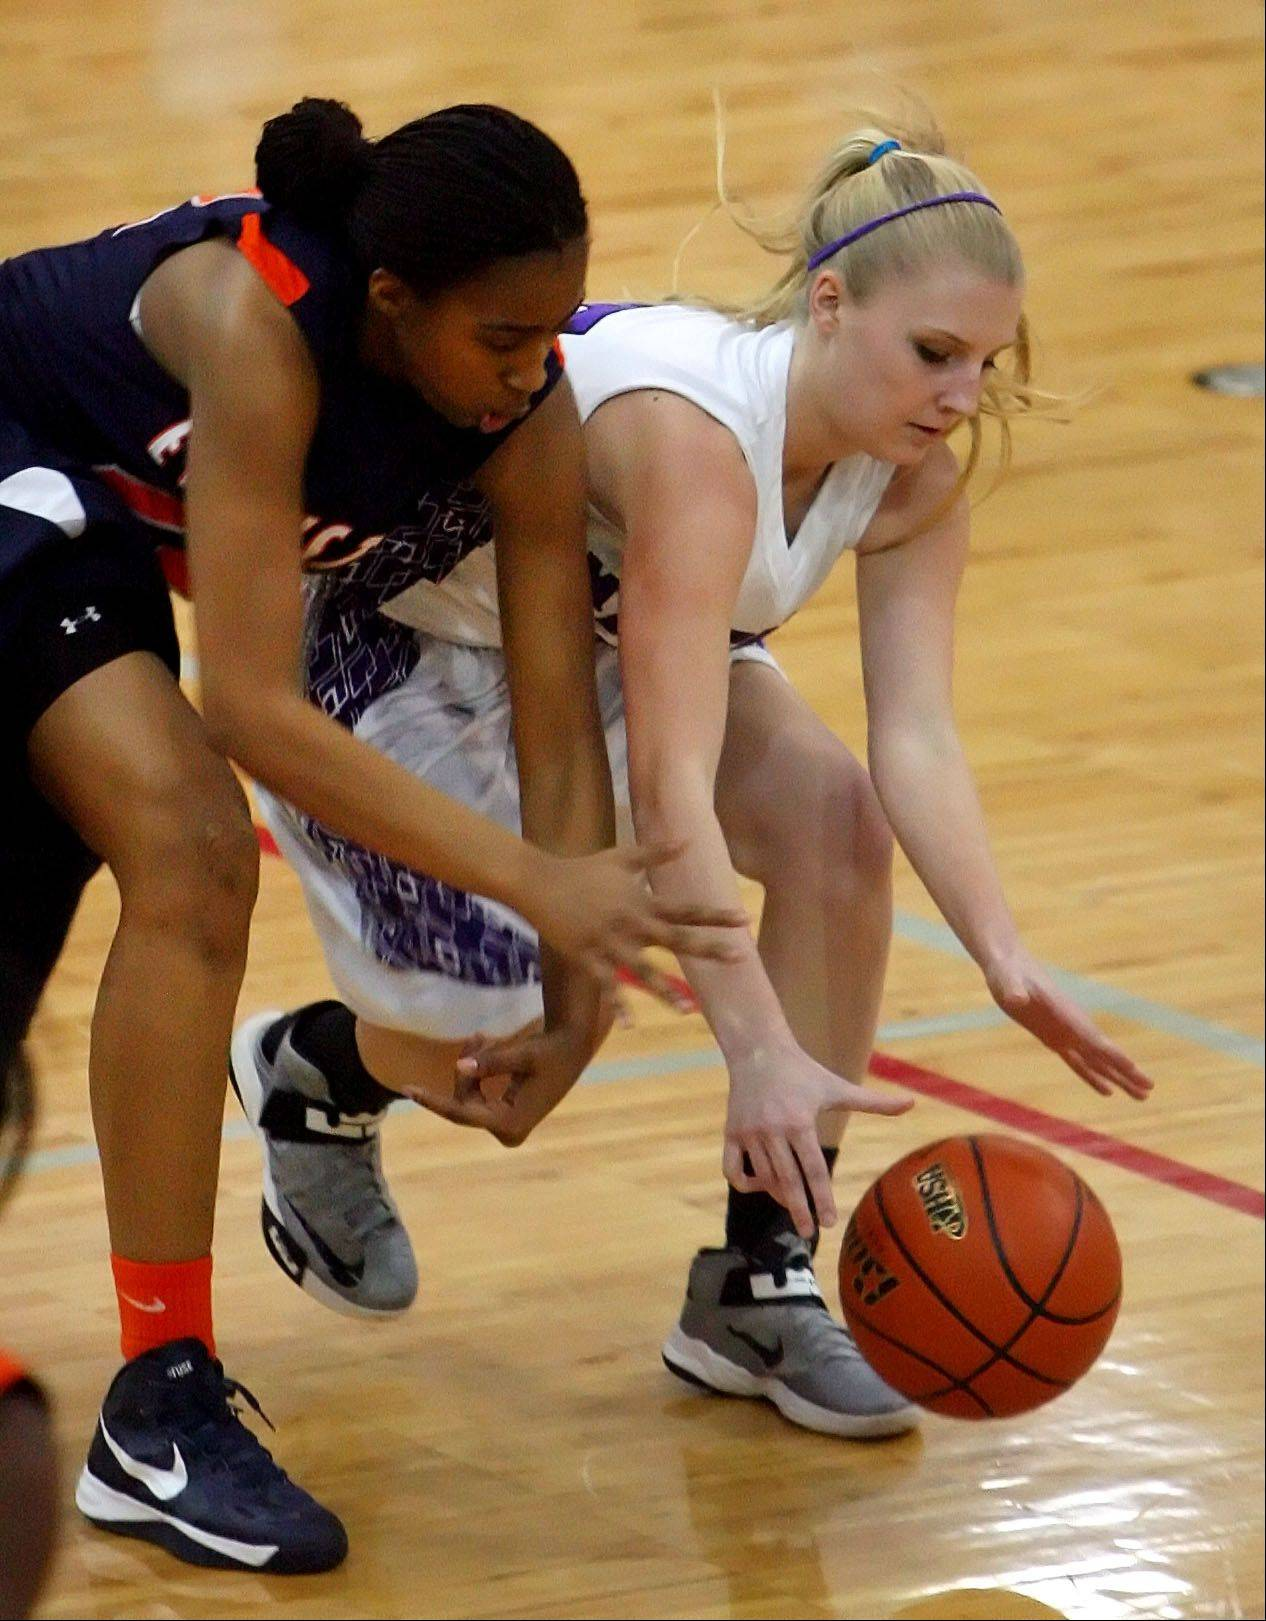 Steve Lundy/slundy@dailyherald.com Rolling Meadows' Allie Kemph, right and Evanston's Dashae Shumate battle for a loose ball in Class 4A Niles West supersectional action Monday night in Skokie.